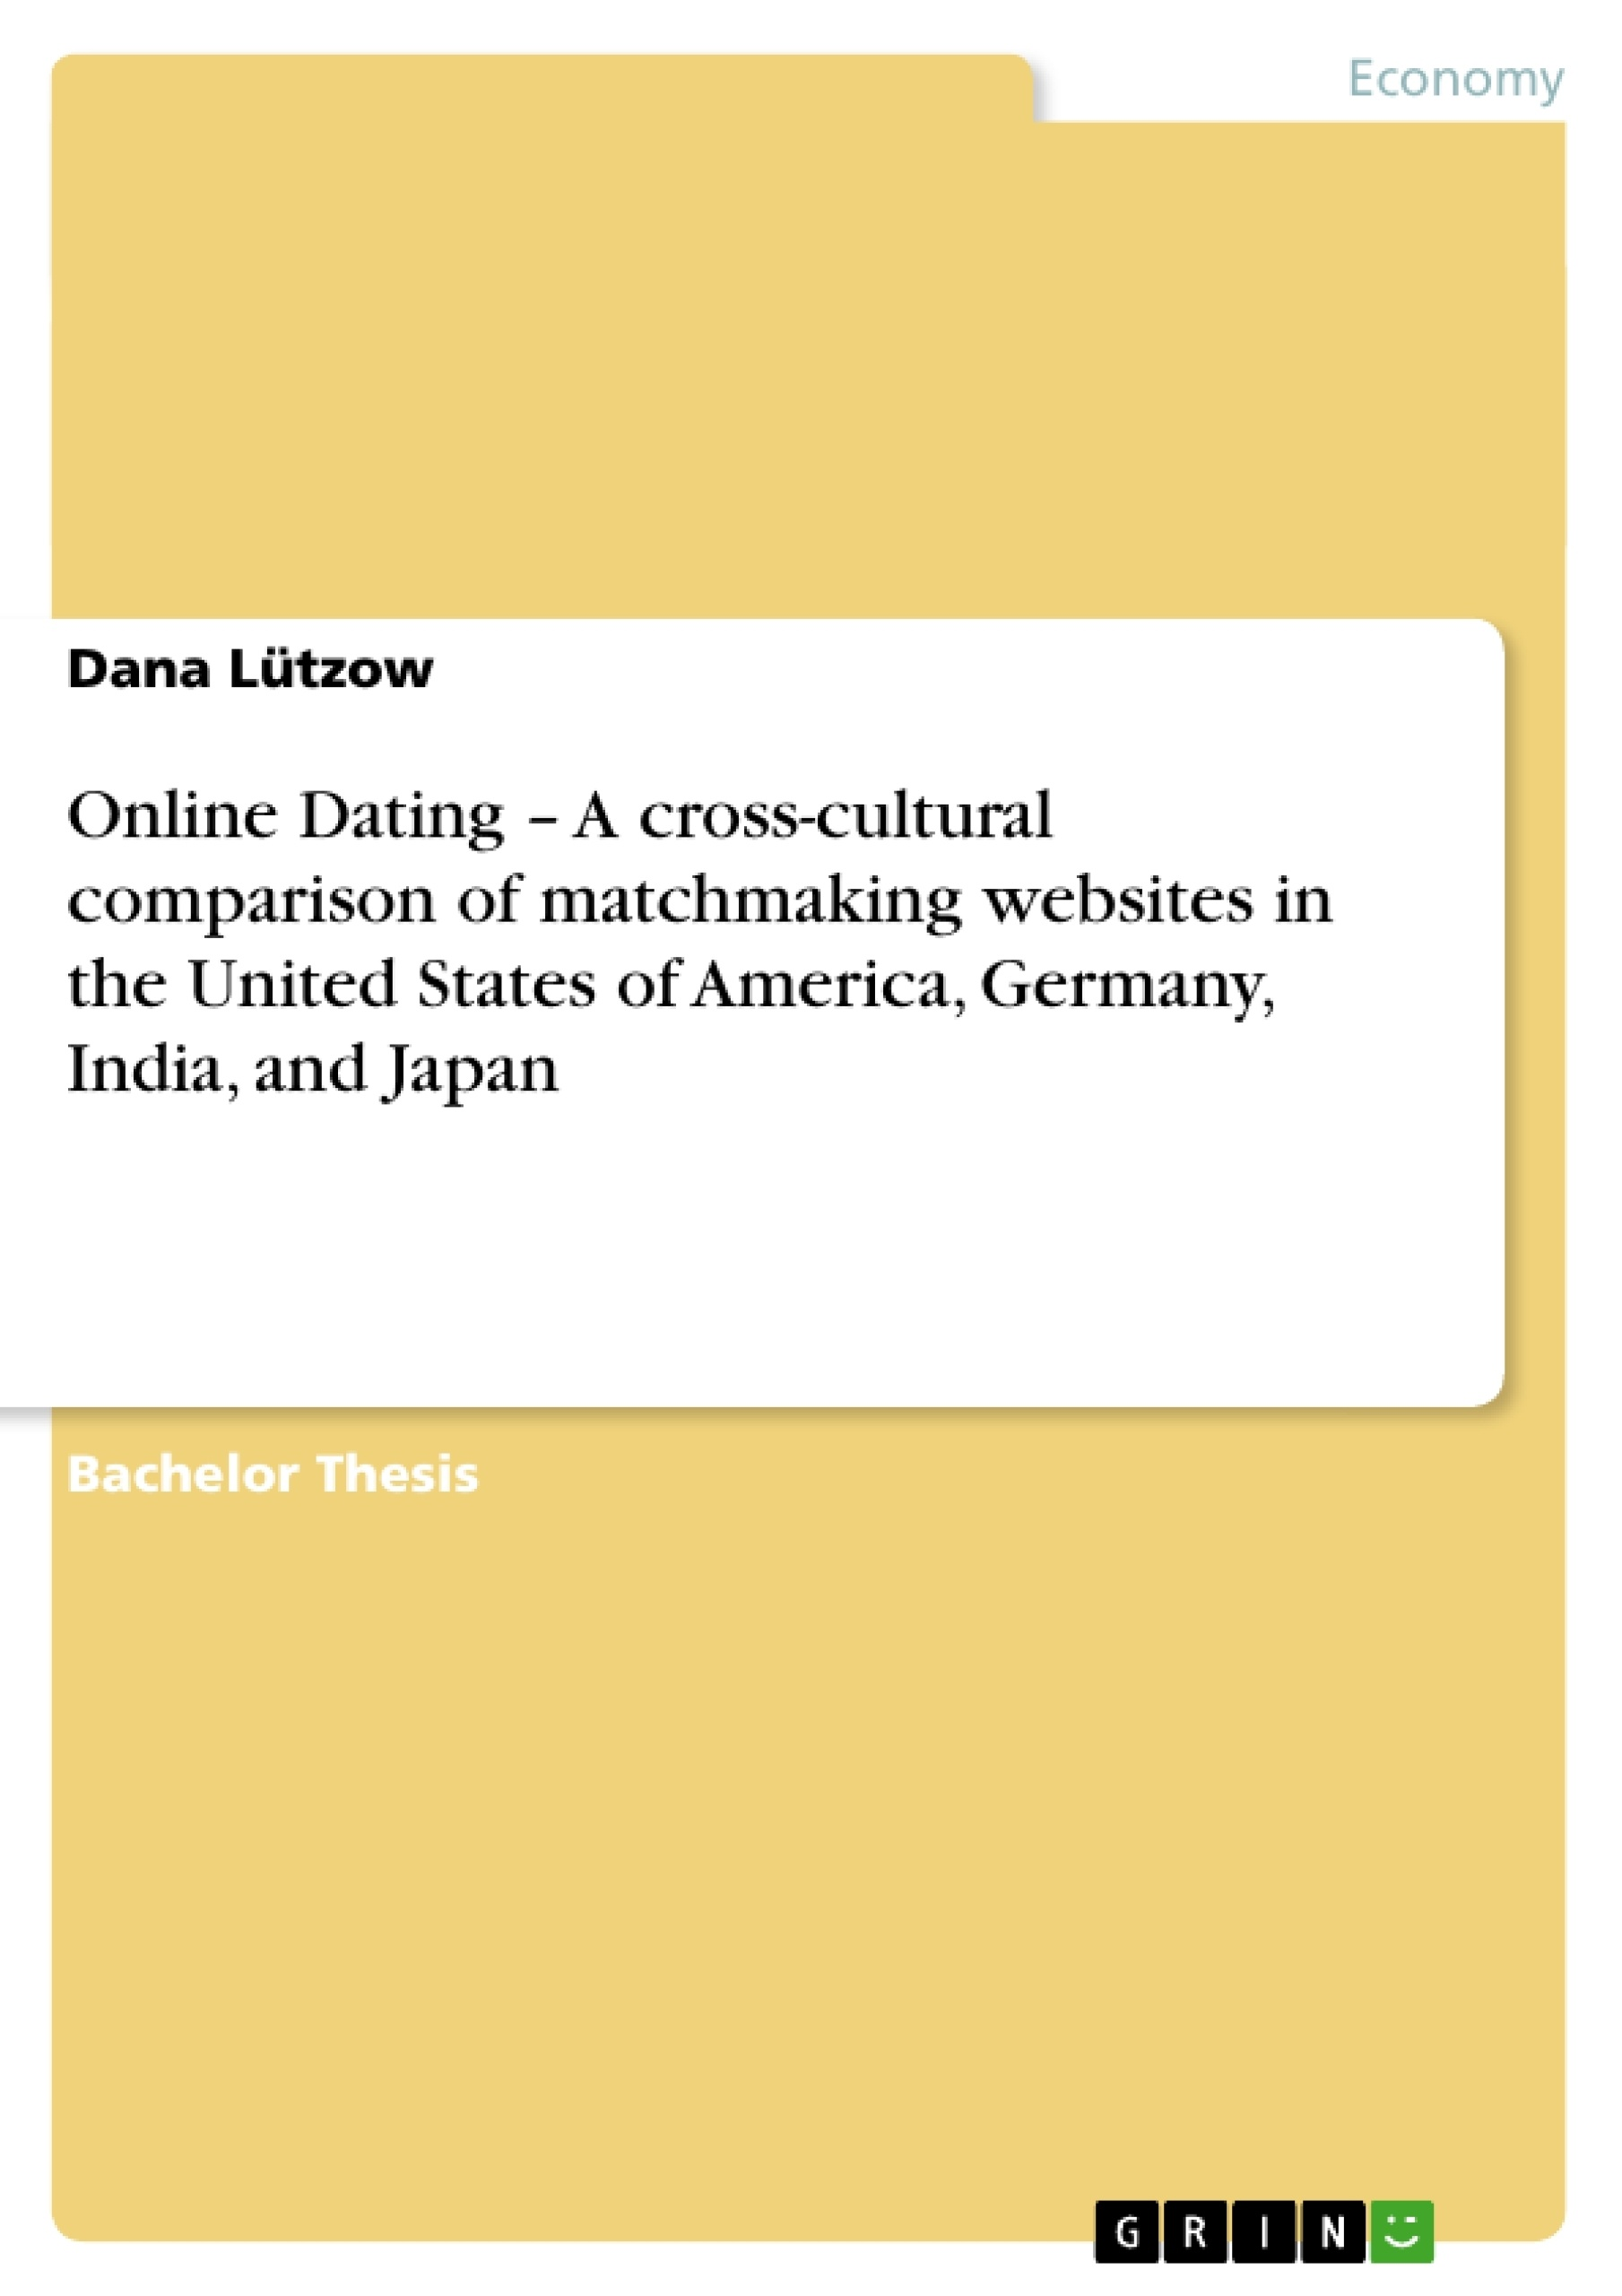 Title: Online Dating – A cross-cultural comparison of matchmaking websites in the United States of America, Germany, India, and Japan